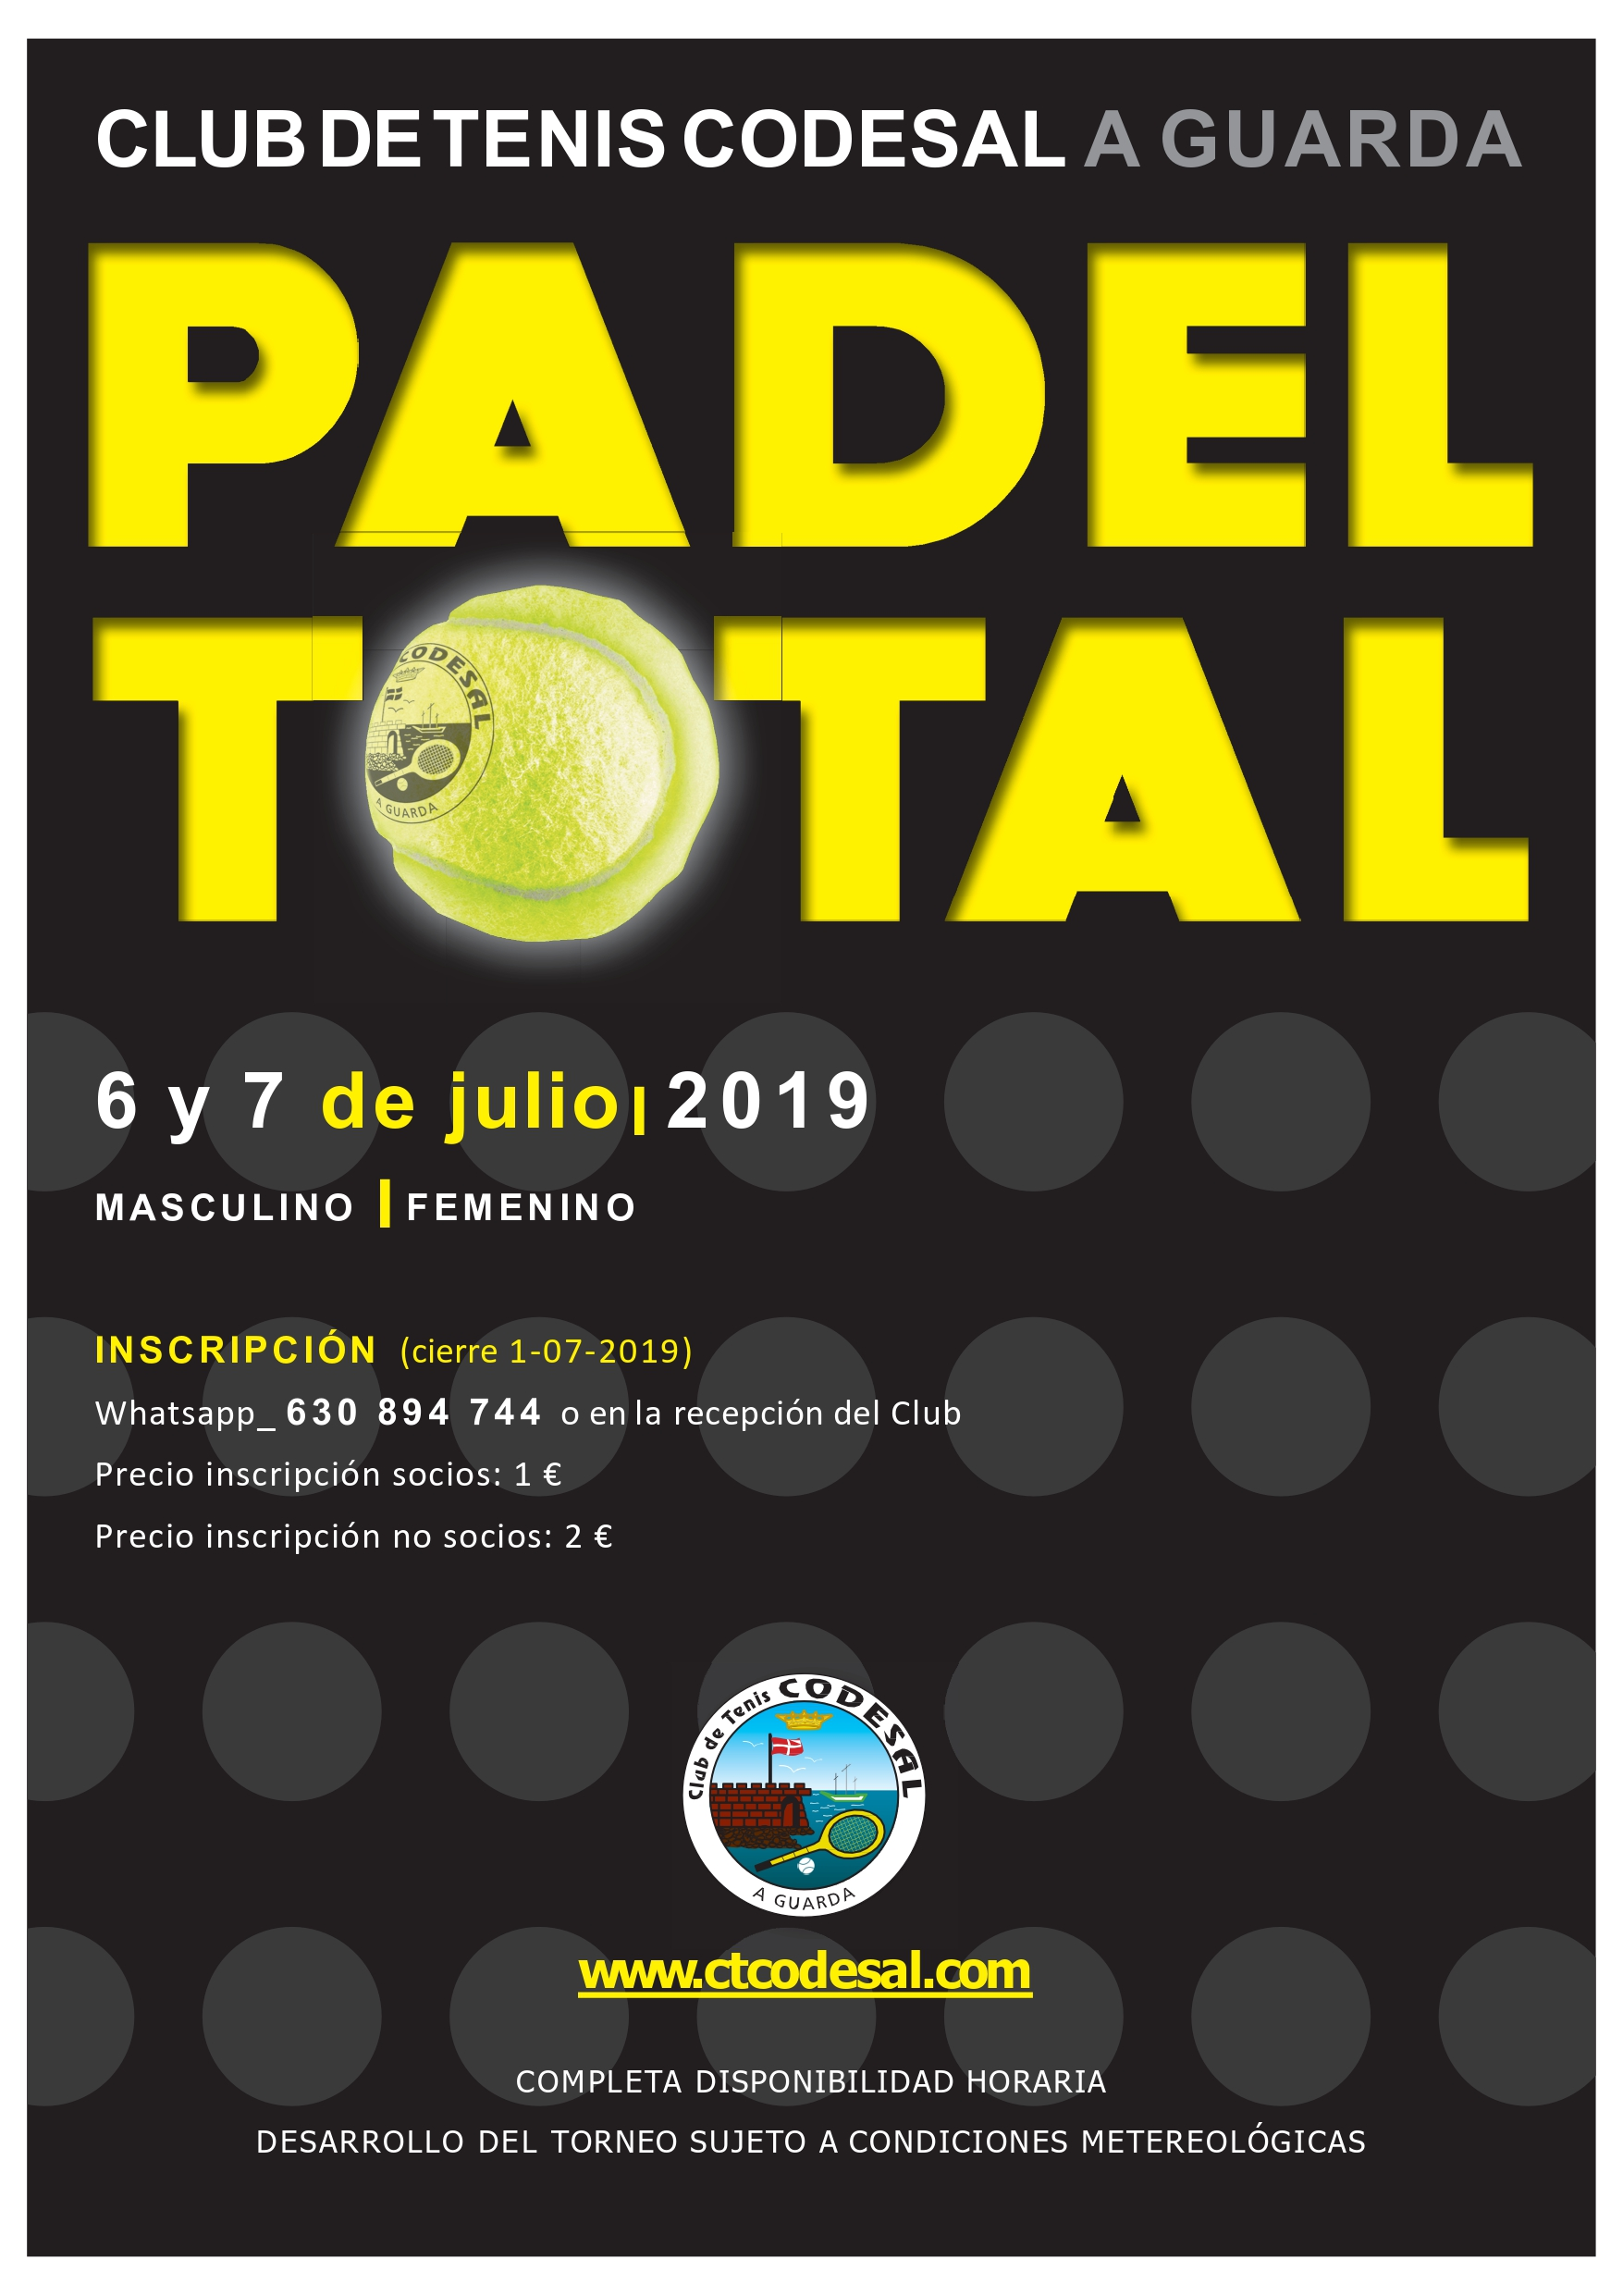 PADEL TOTAL 6 Y 7 DE JULIO 2019